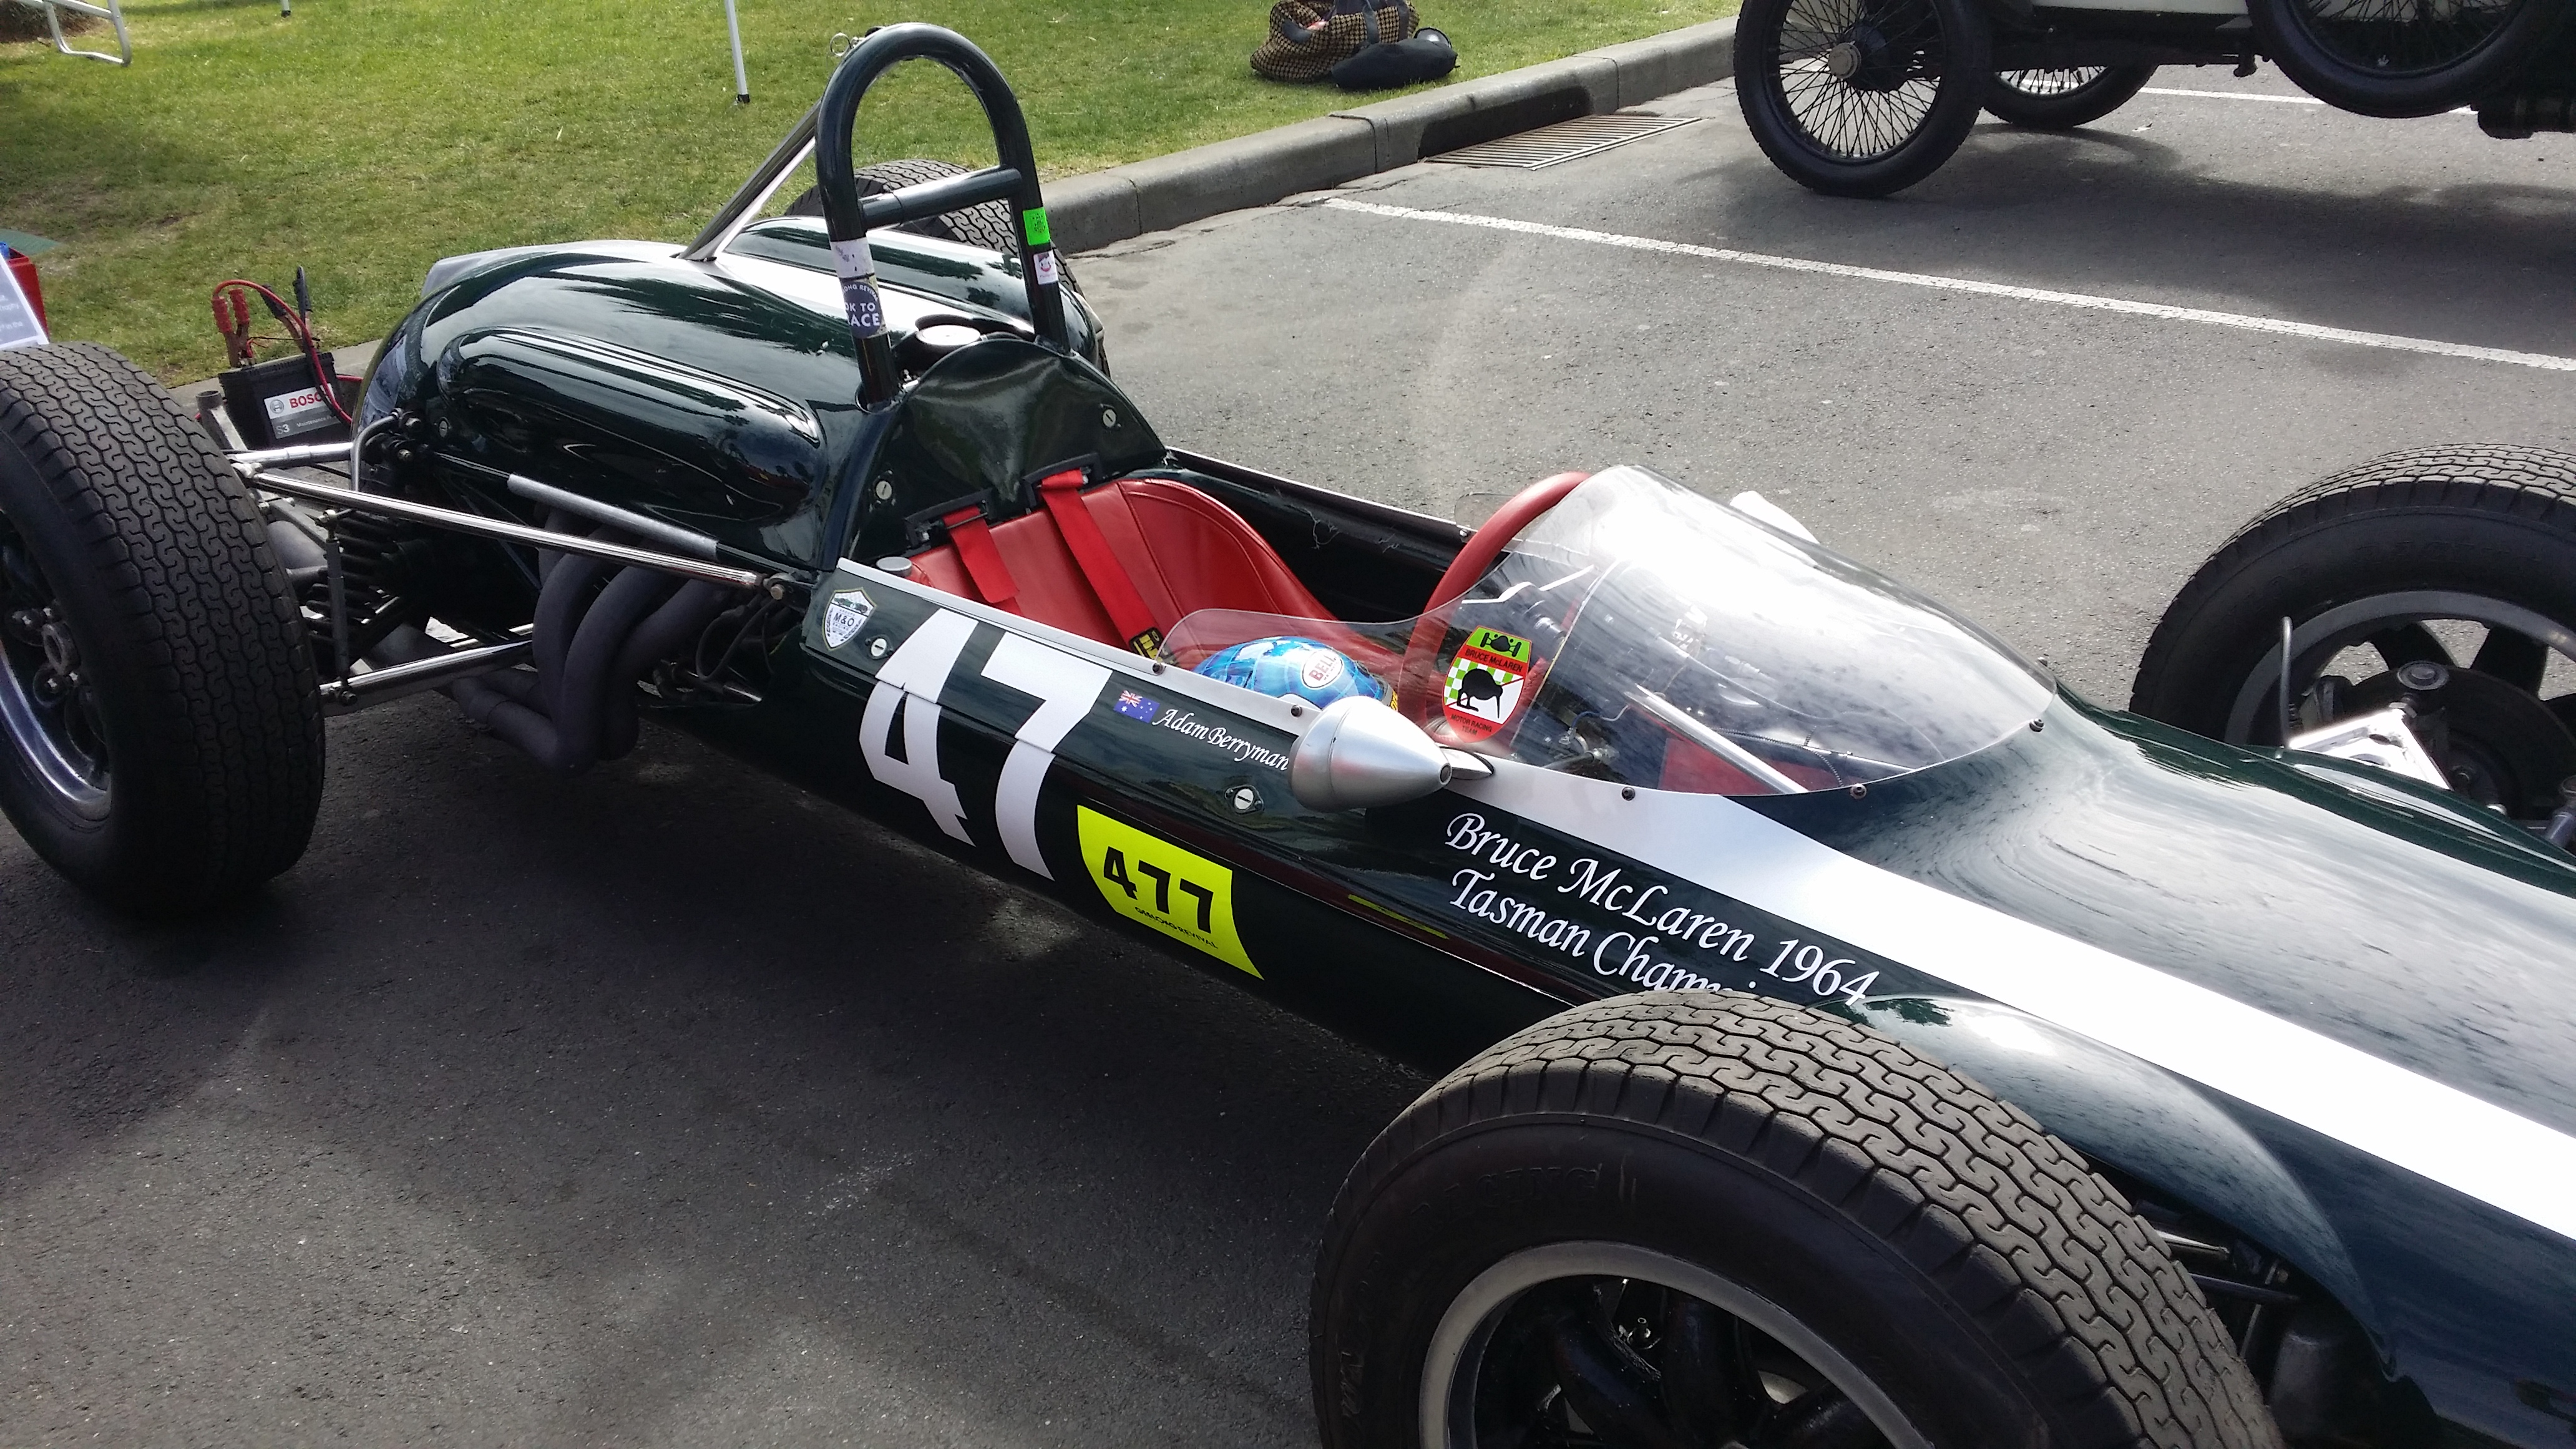 First McLaren Car Discovered at the Geelong Revival – The Cooper T70 ...